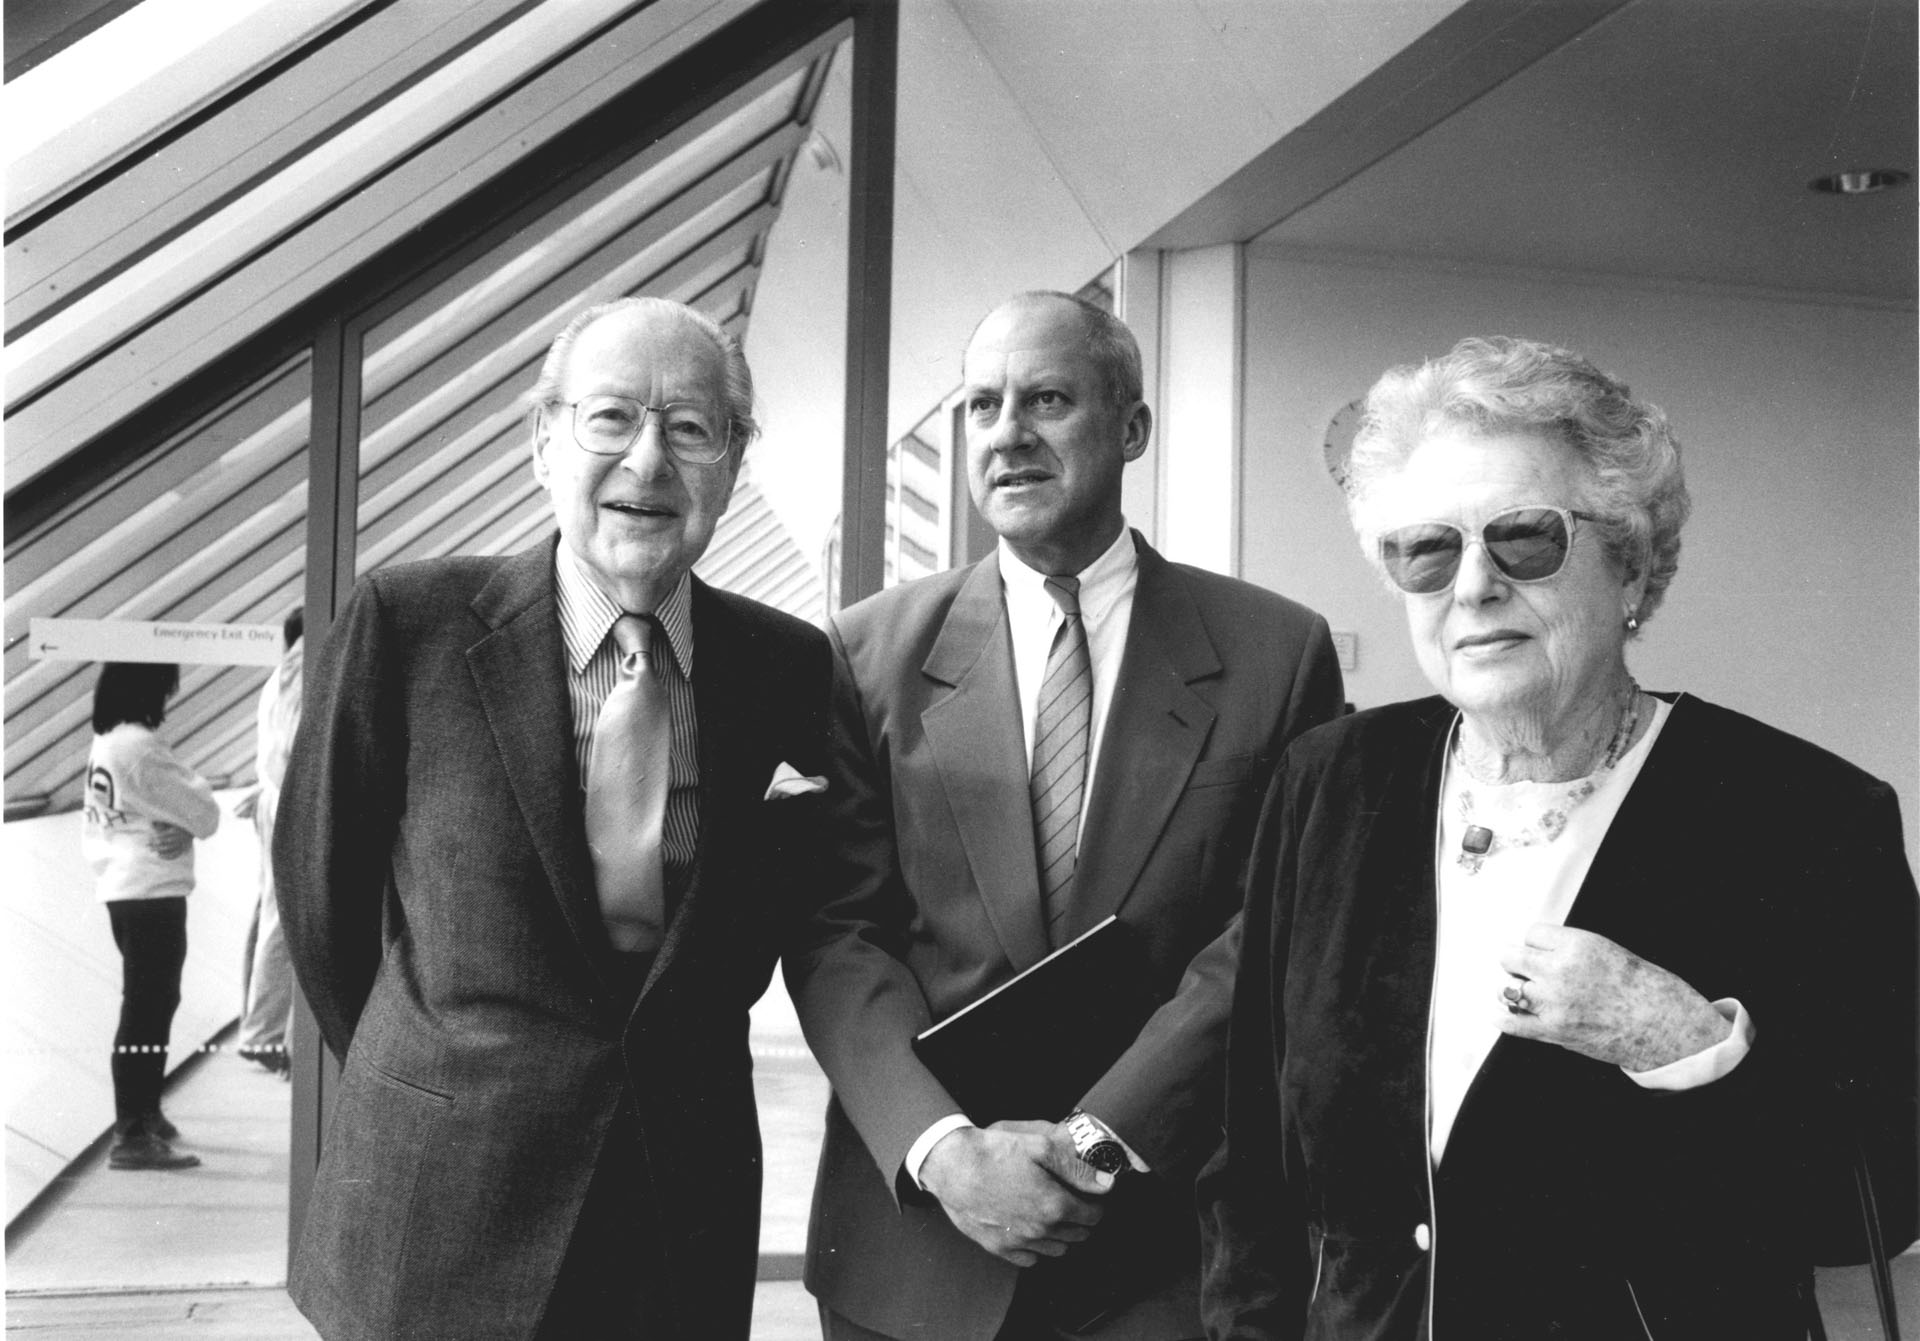 Robert and Lisa Sainsbury with Norman Foster, 1991